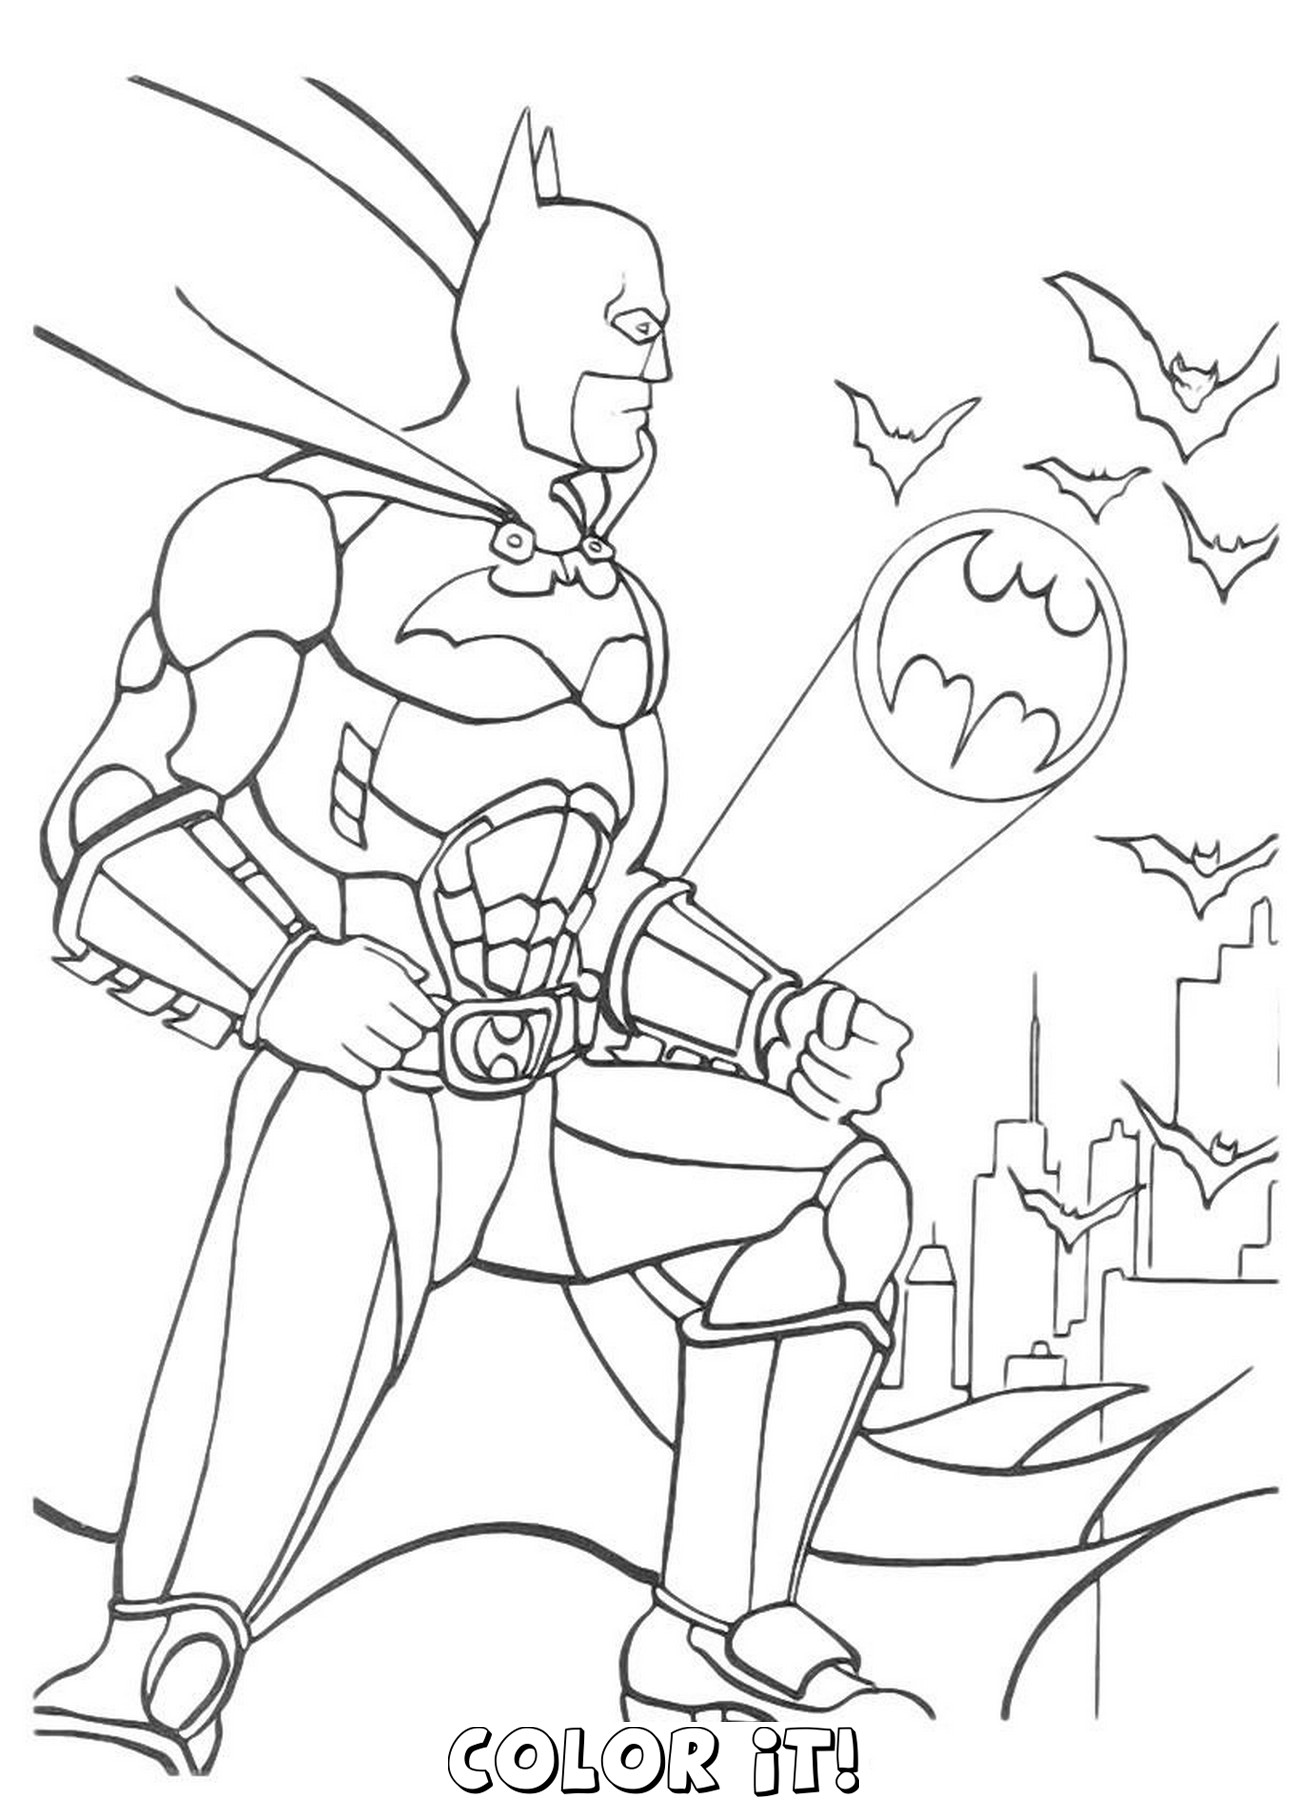 batman and robin printable coloring pages batman and robin coloring pages free printable batman and and printable batman pages robin coloring